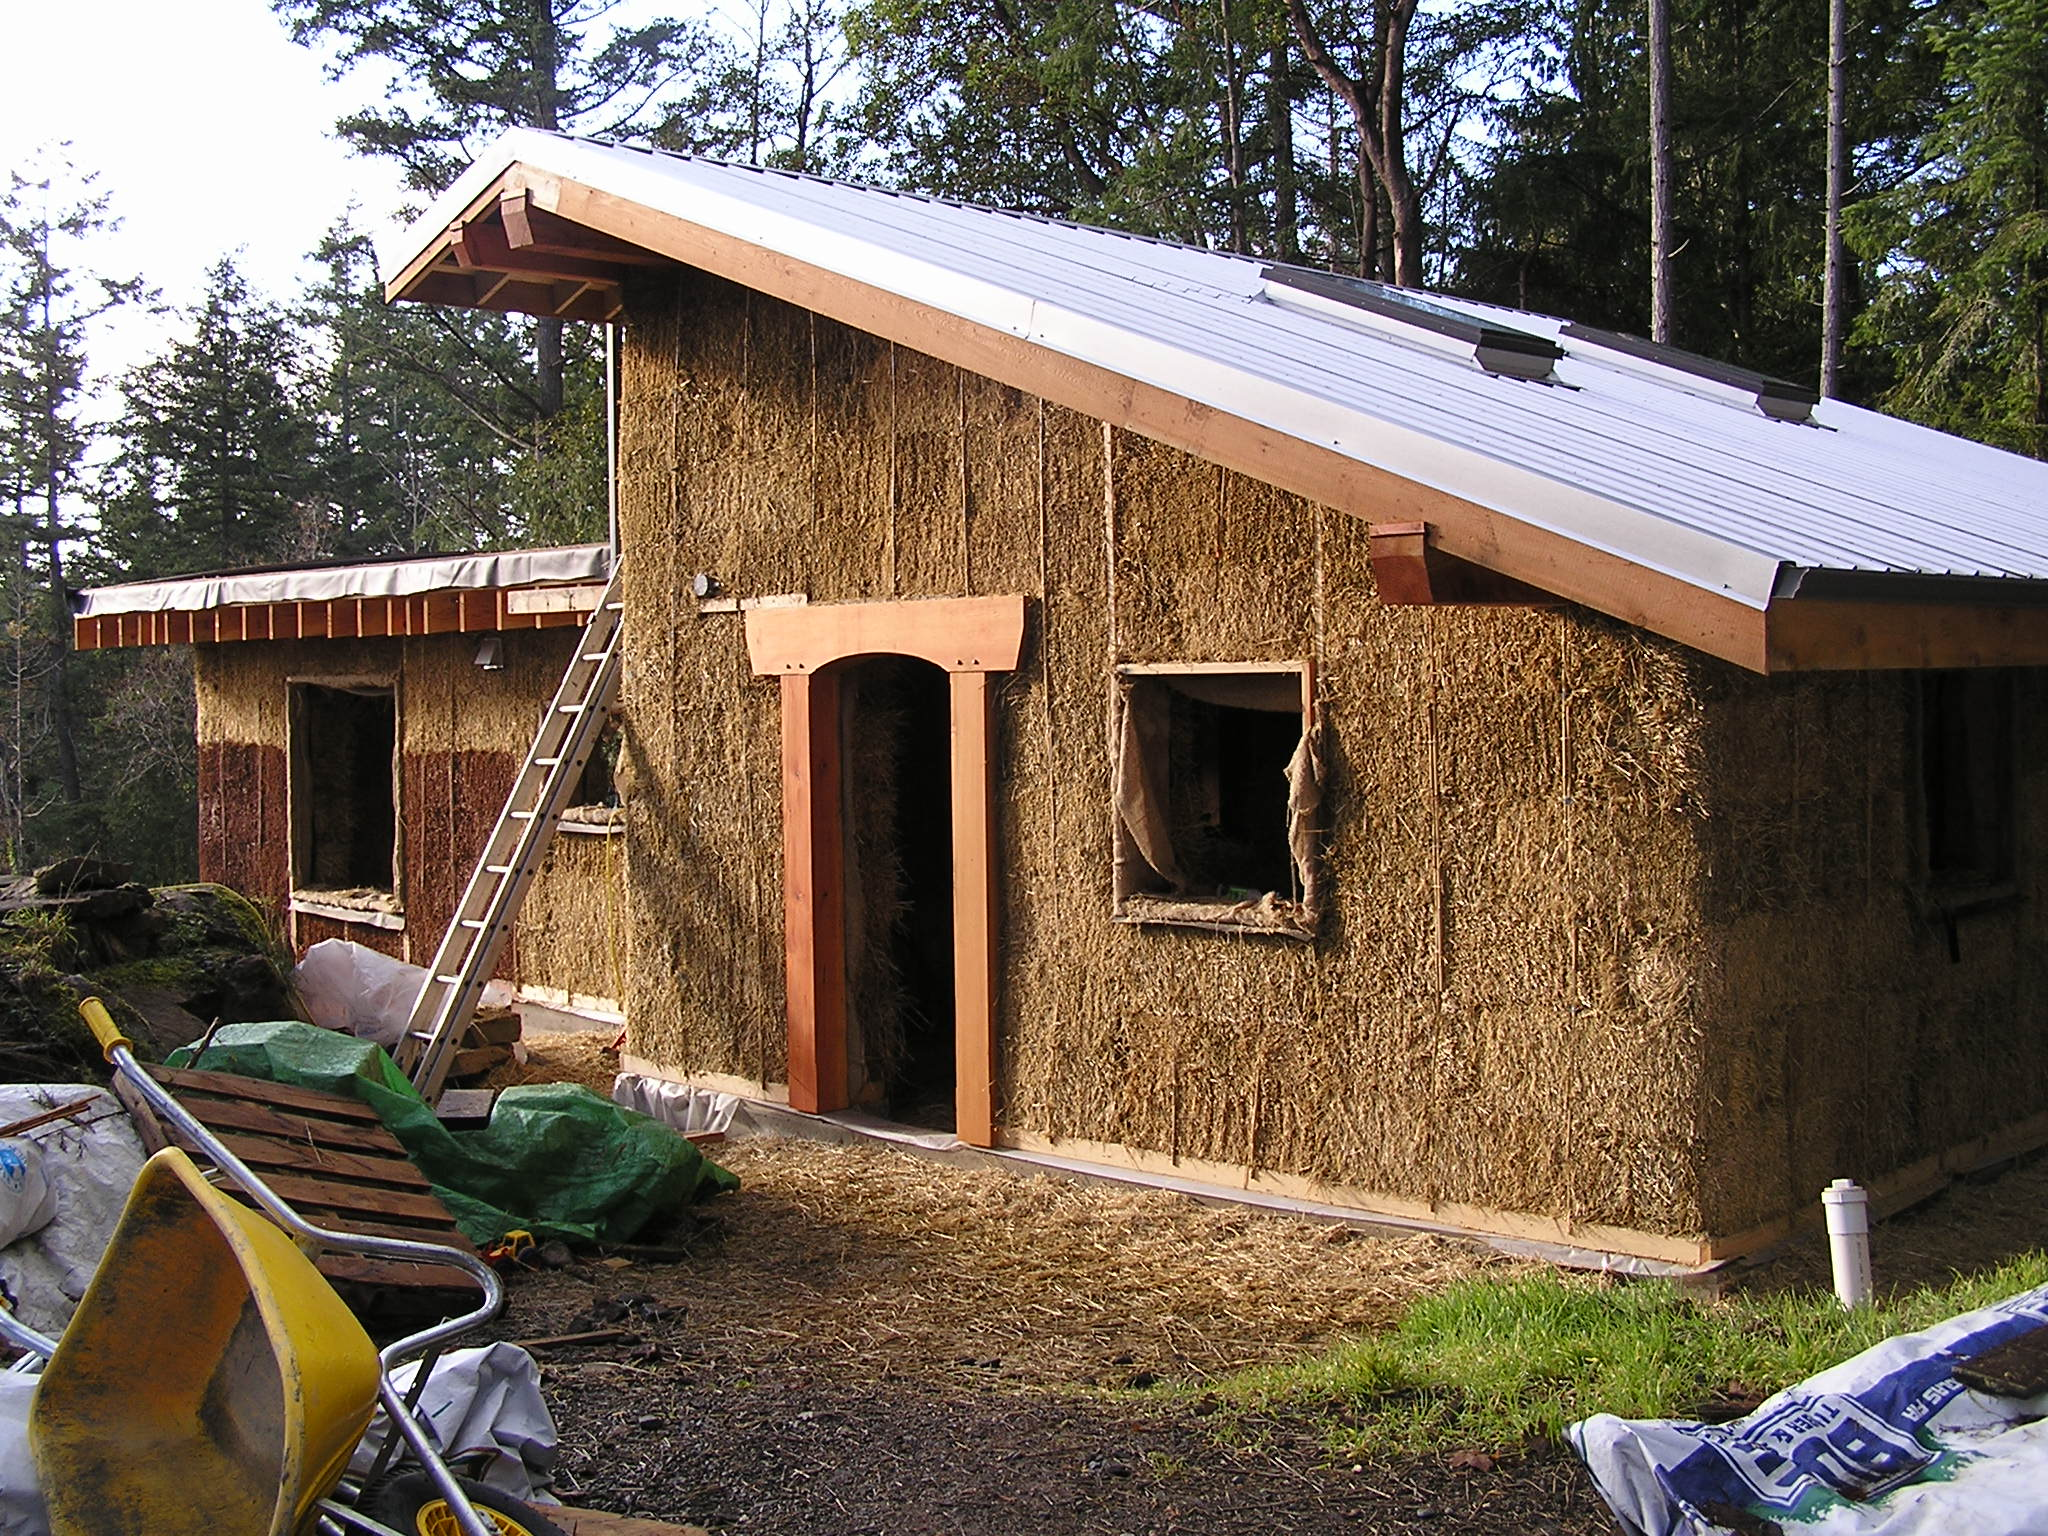 Strawbale construction inspirational village for Shed construction